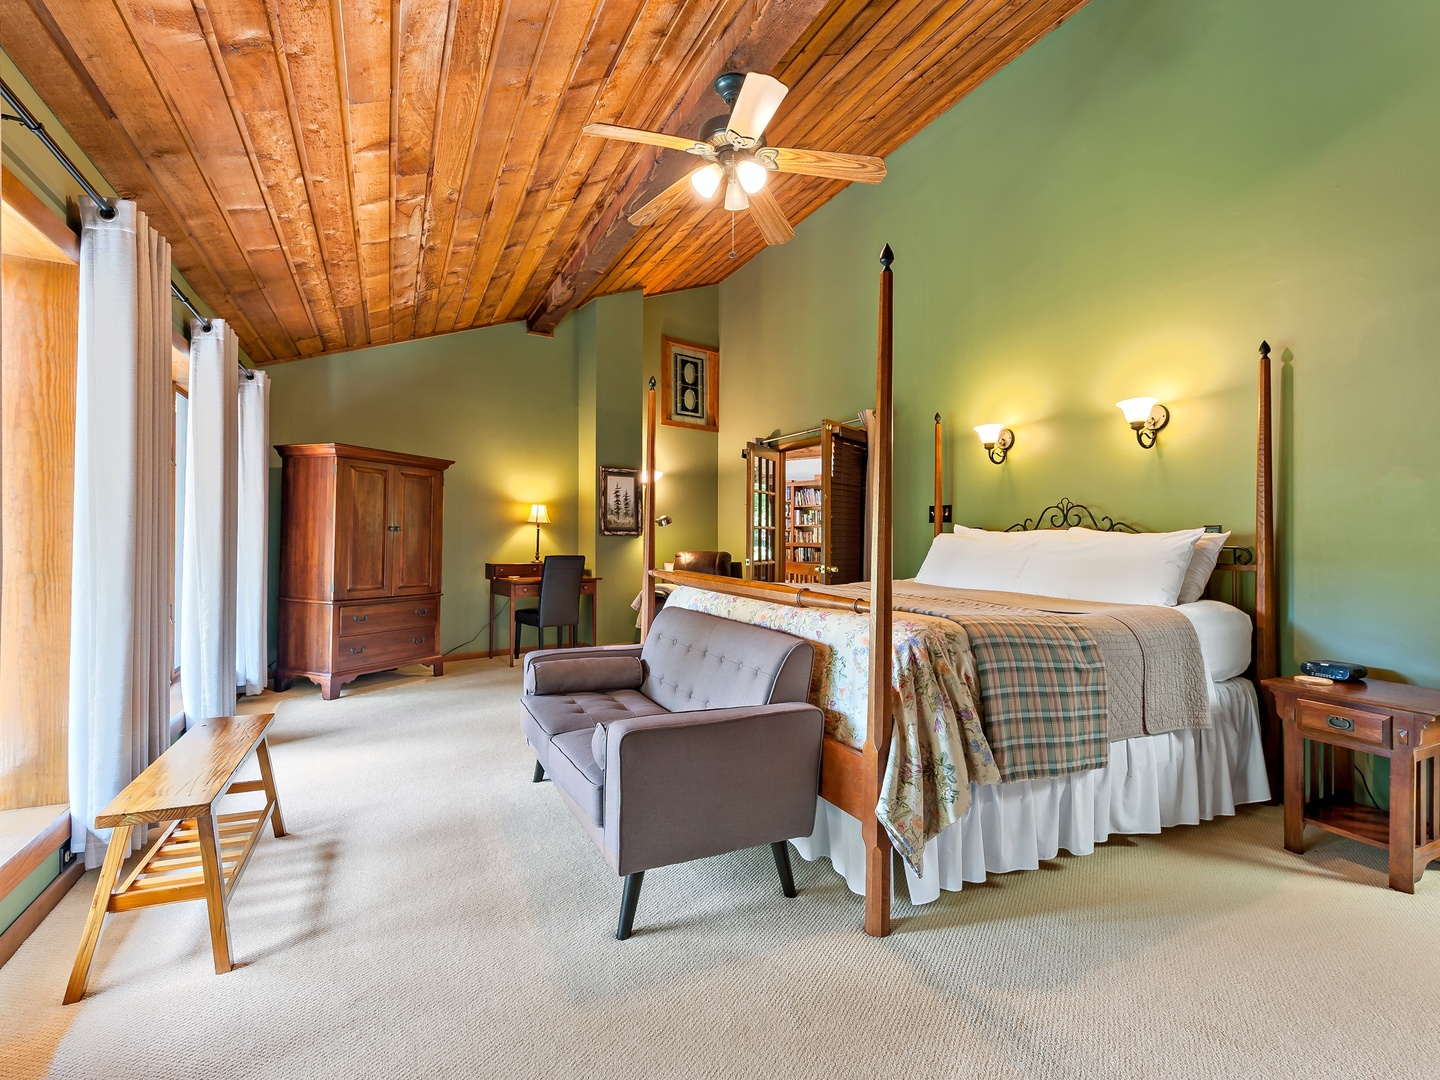 A bedroom with a bed and a chair in a room at Inn on Mill Creek.